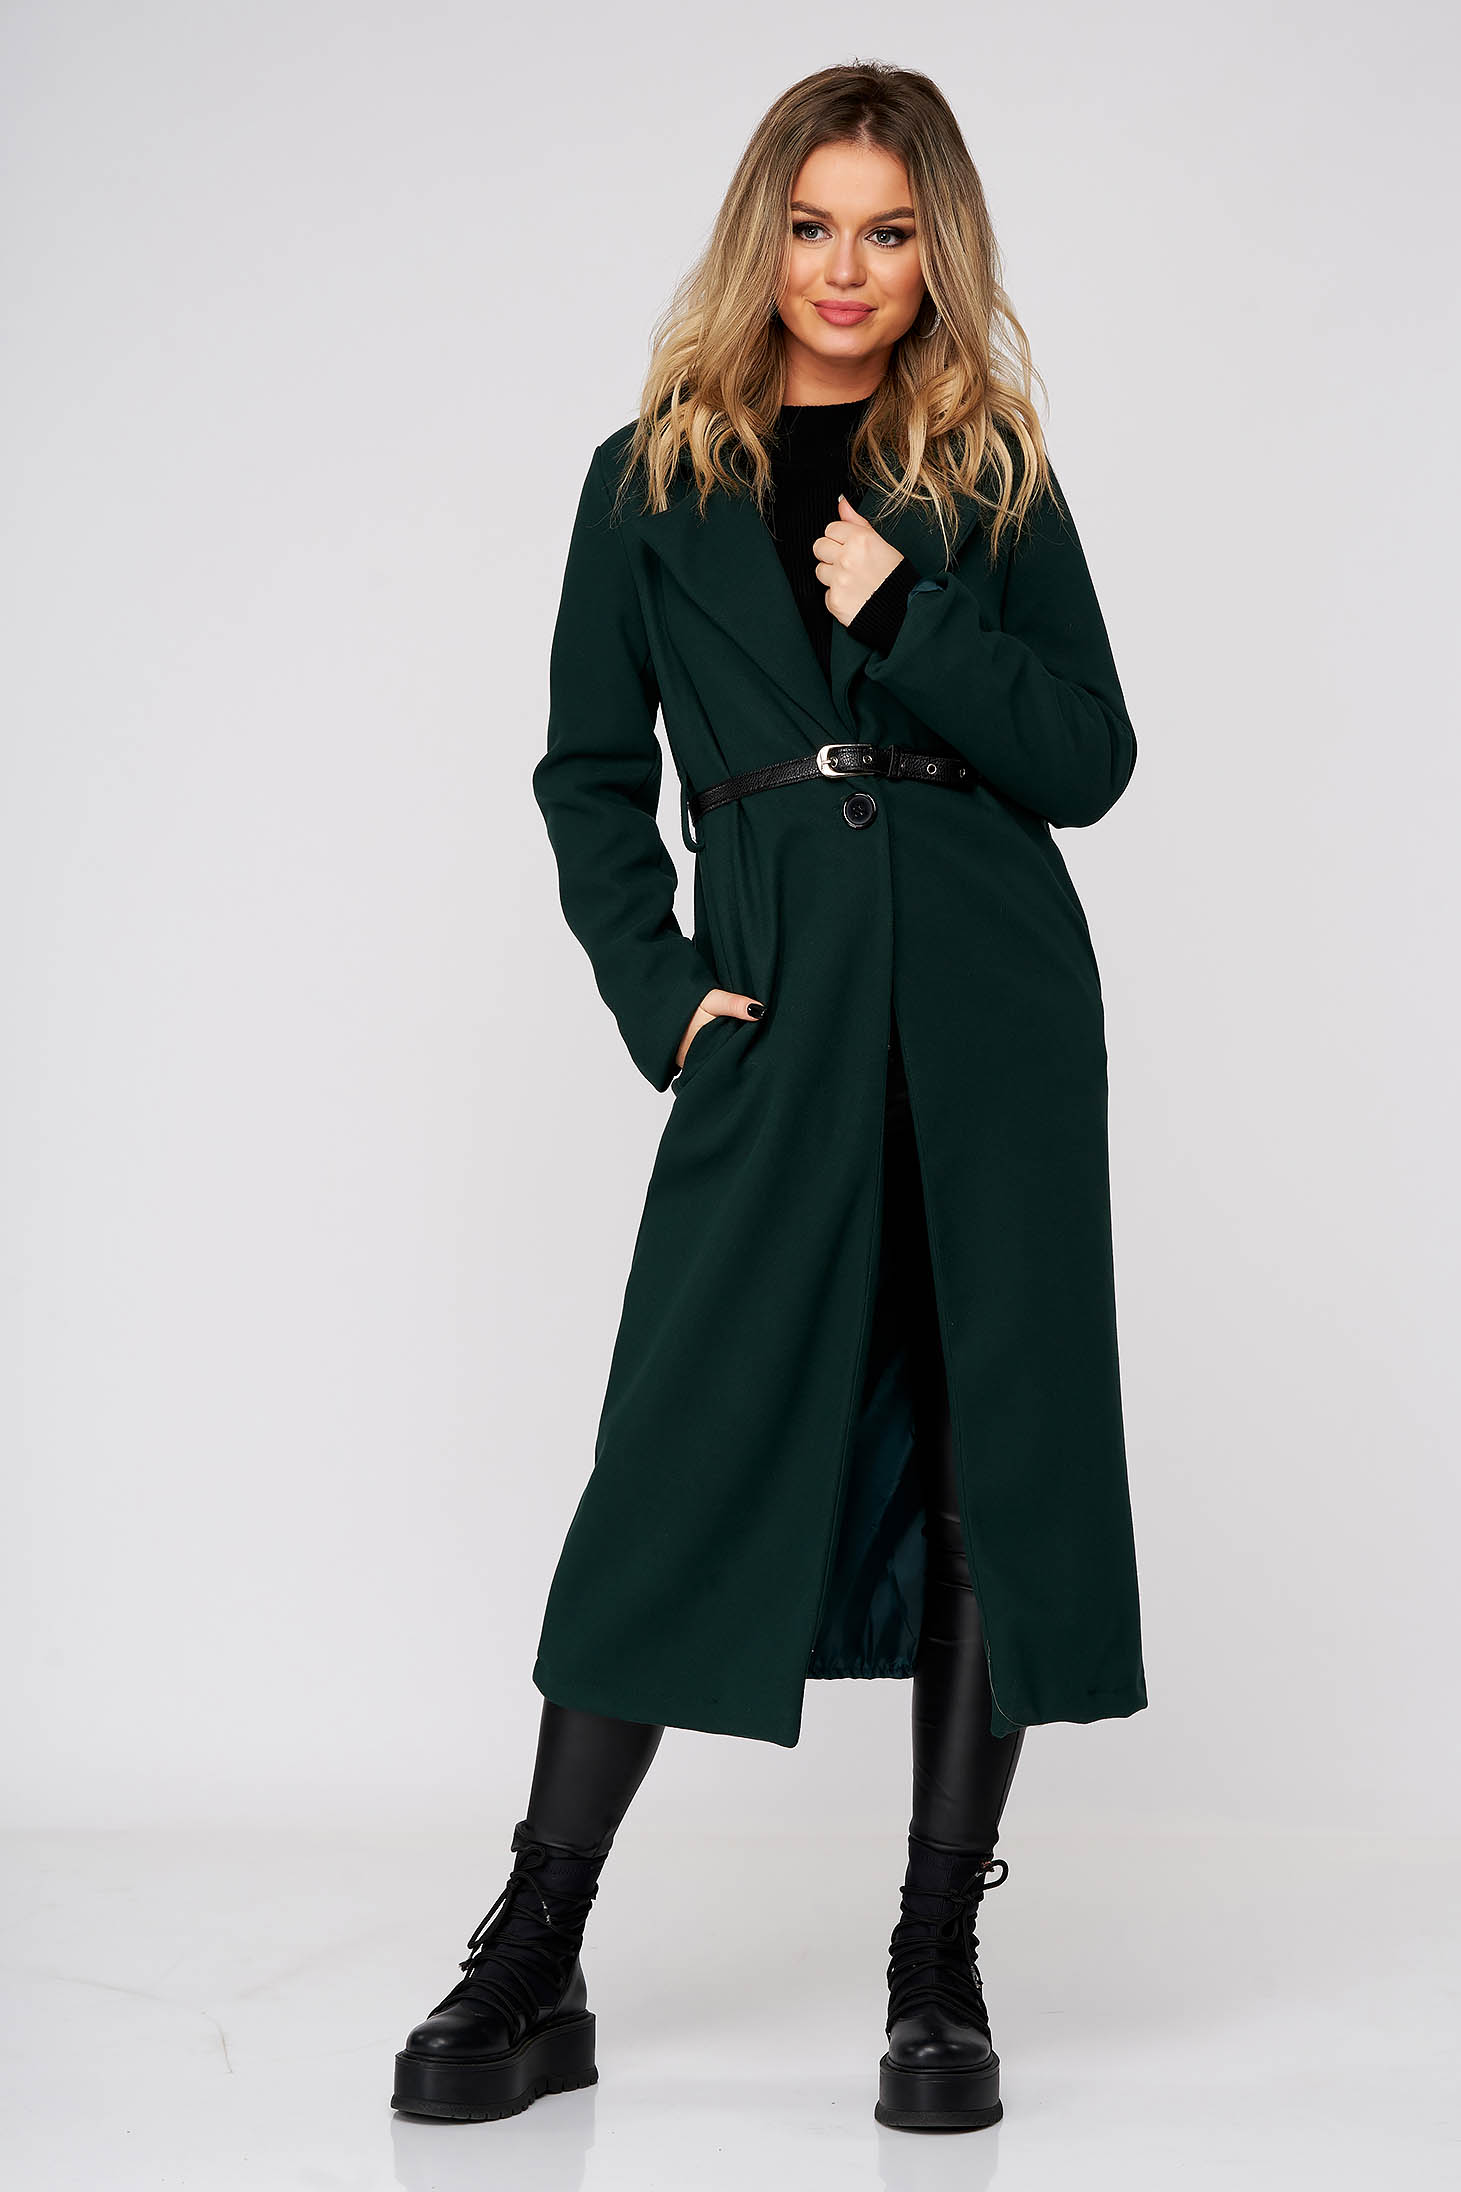 Green coat long straight cloth with pockets accessorized with belt